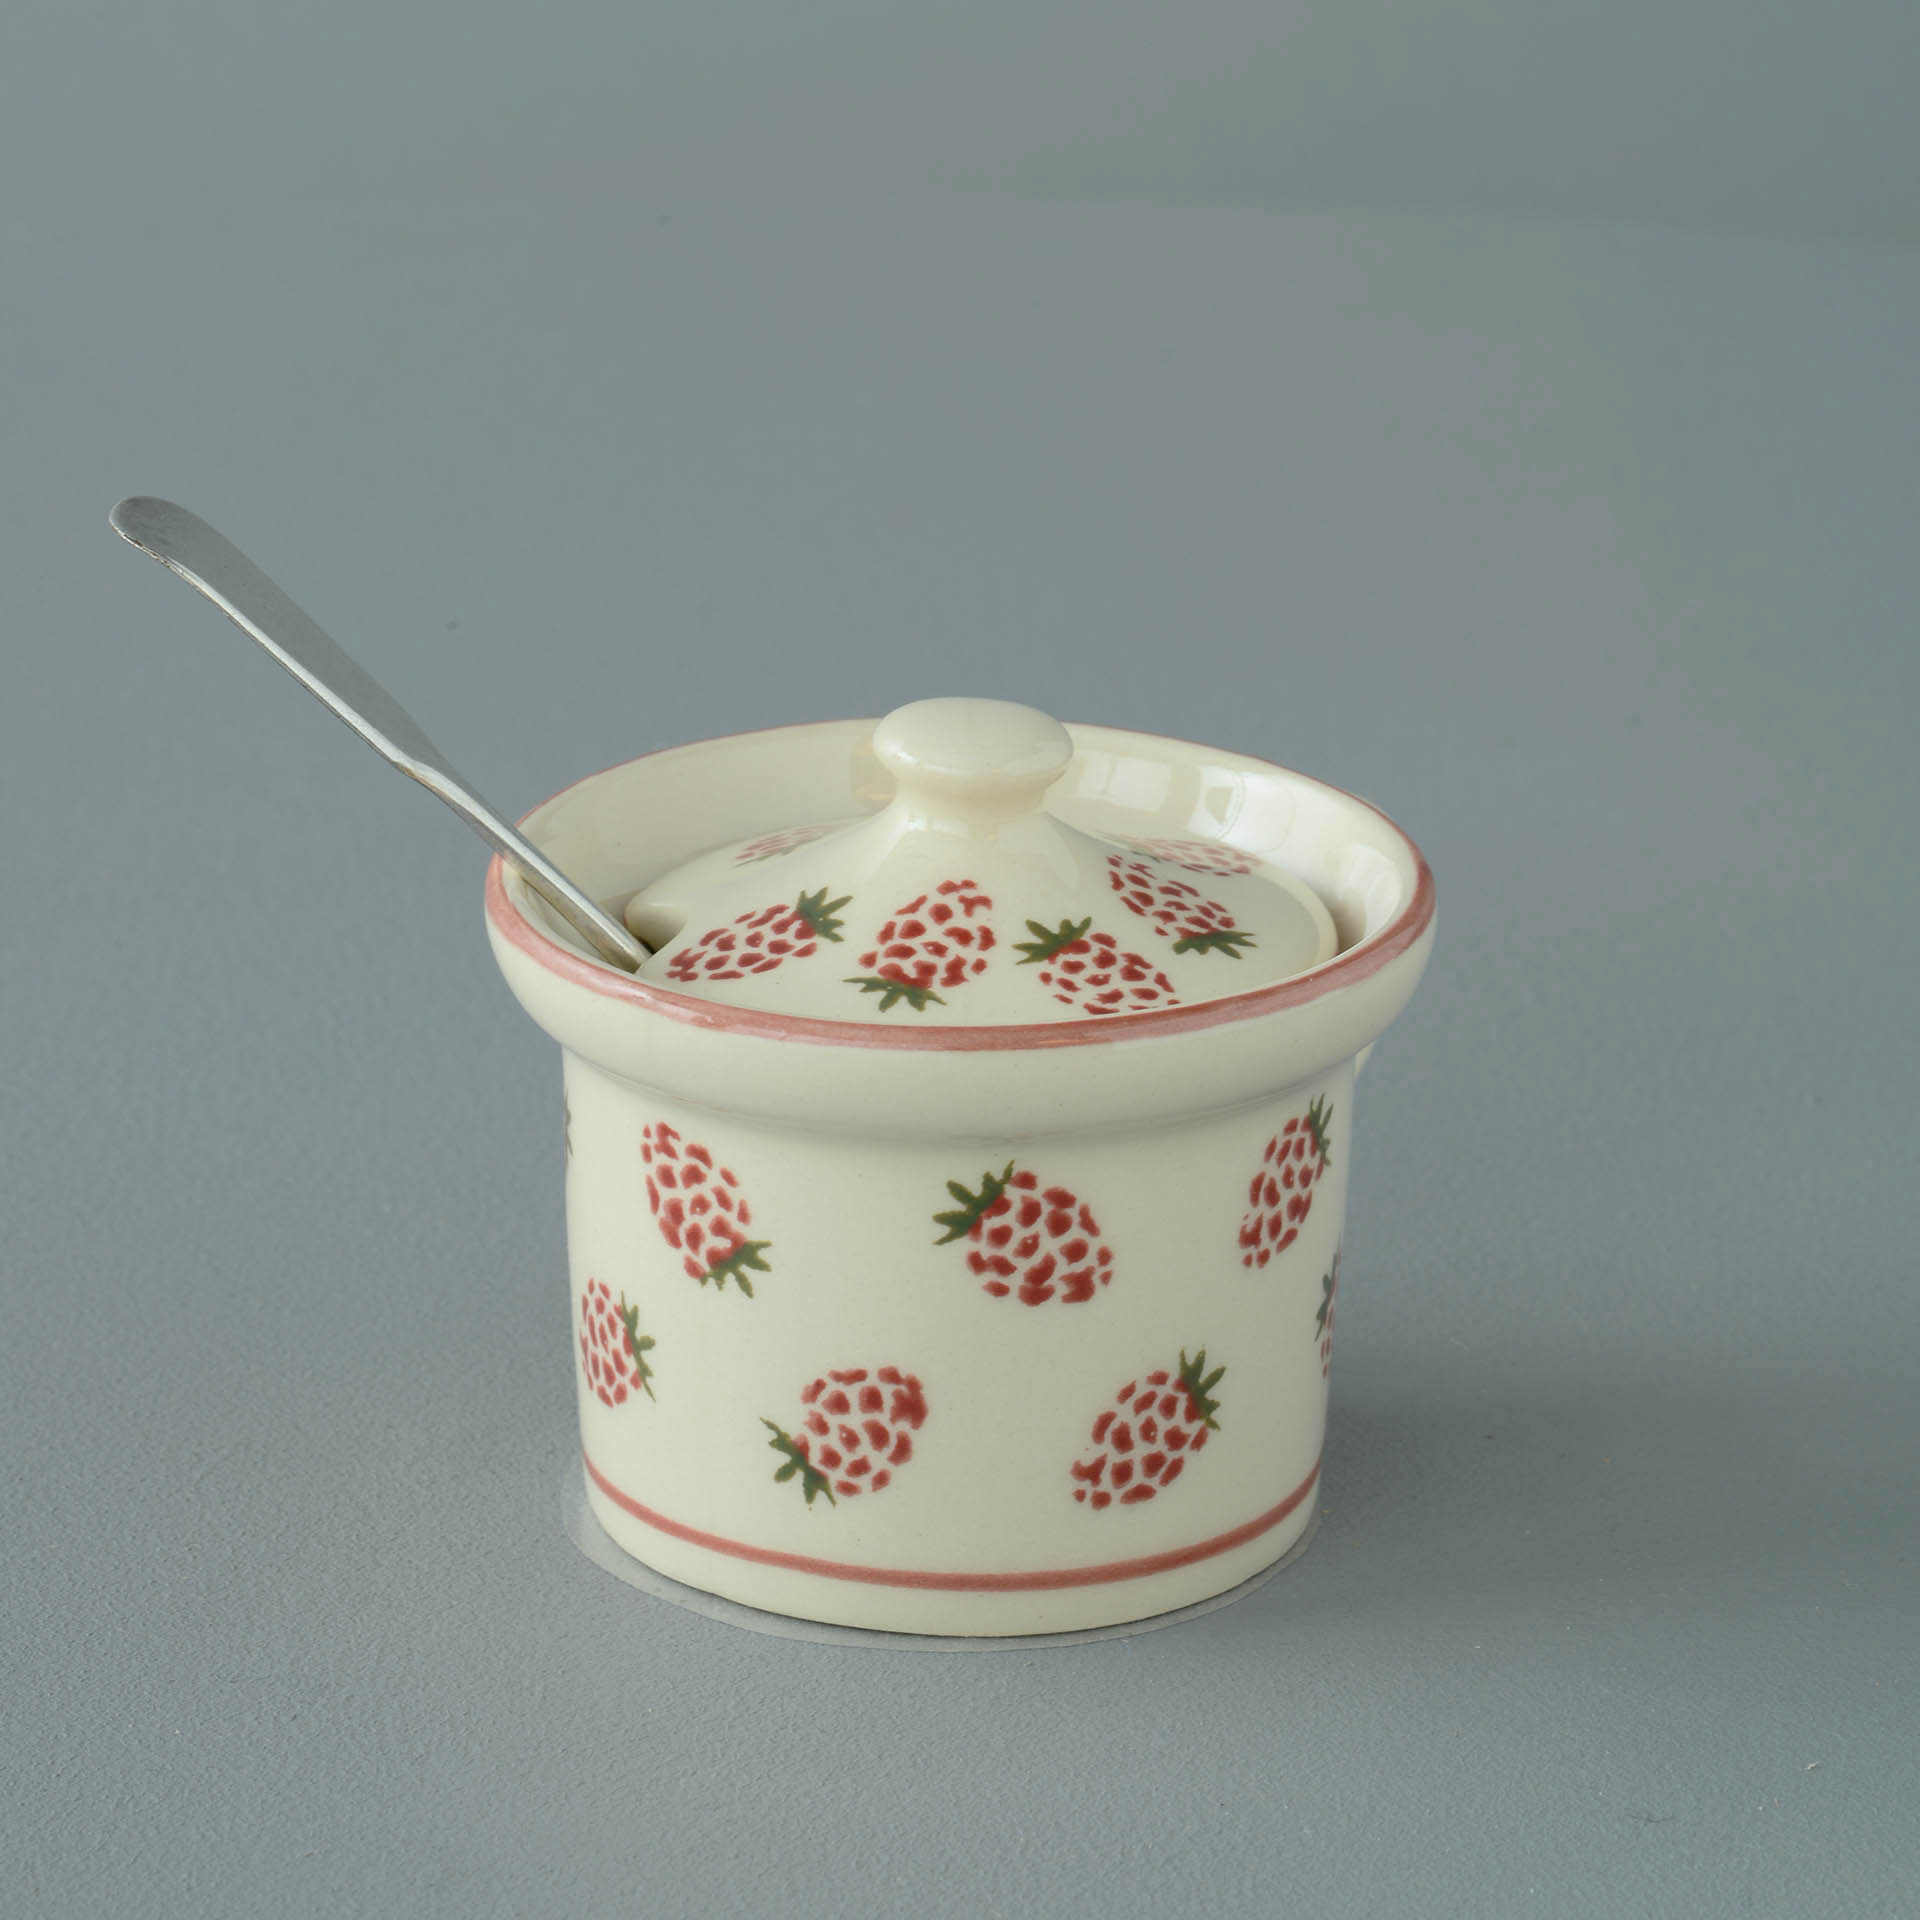 Raspberries Mustard Pot 7.8(w) x 5.4(h) cm